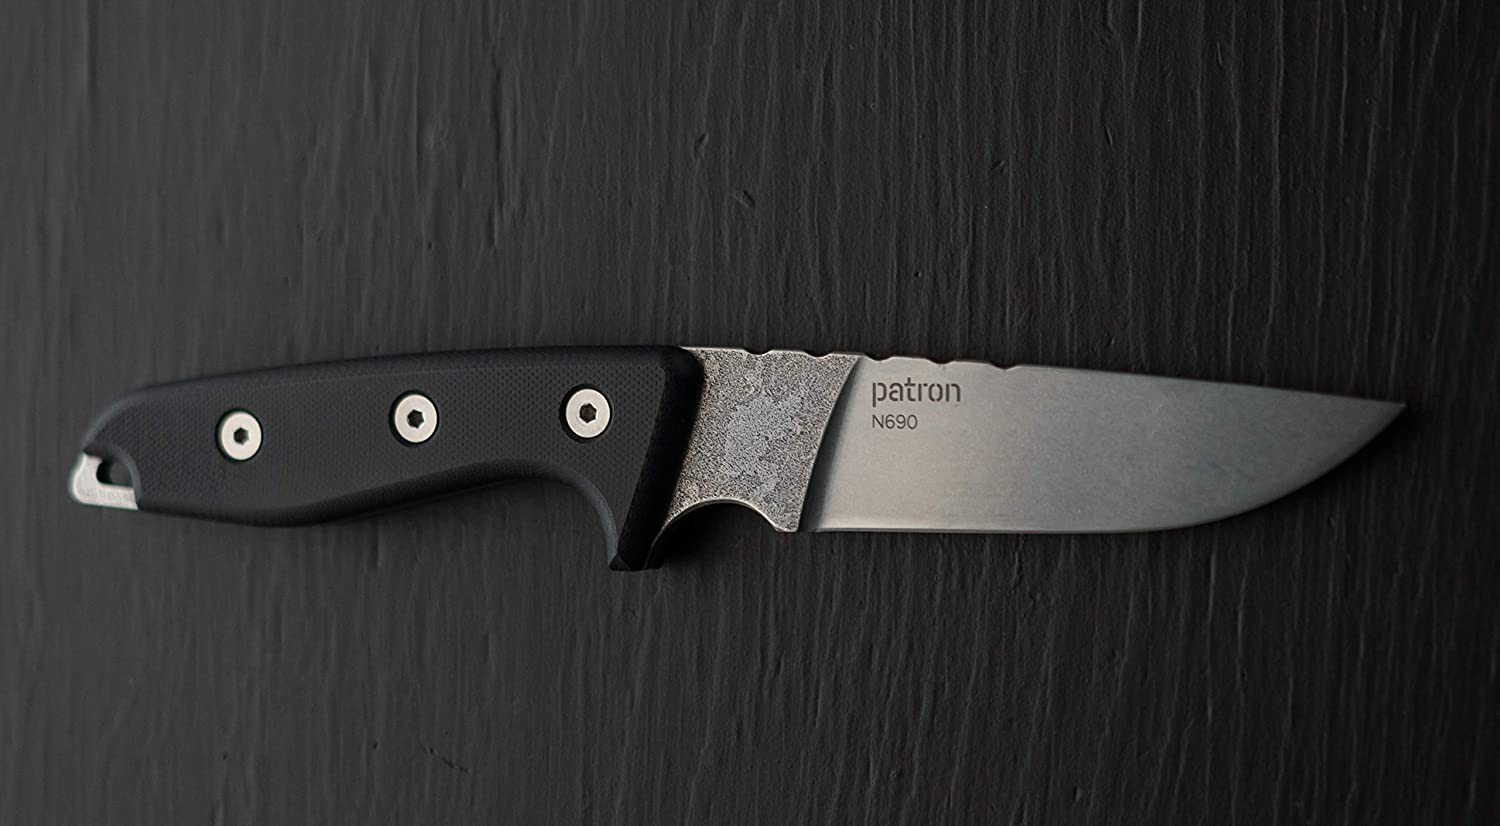 Mikov Knives - Patron Bohler Knife Mad N690 Tactical Ranking TOP2 Field Max 89% OFF